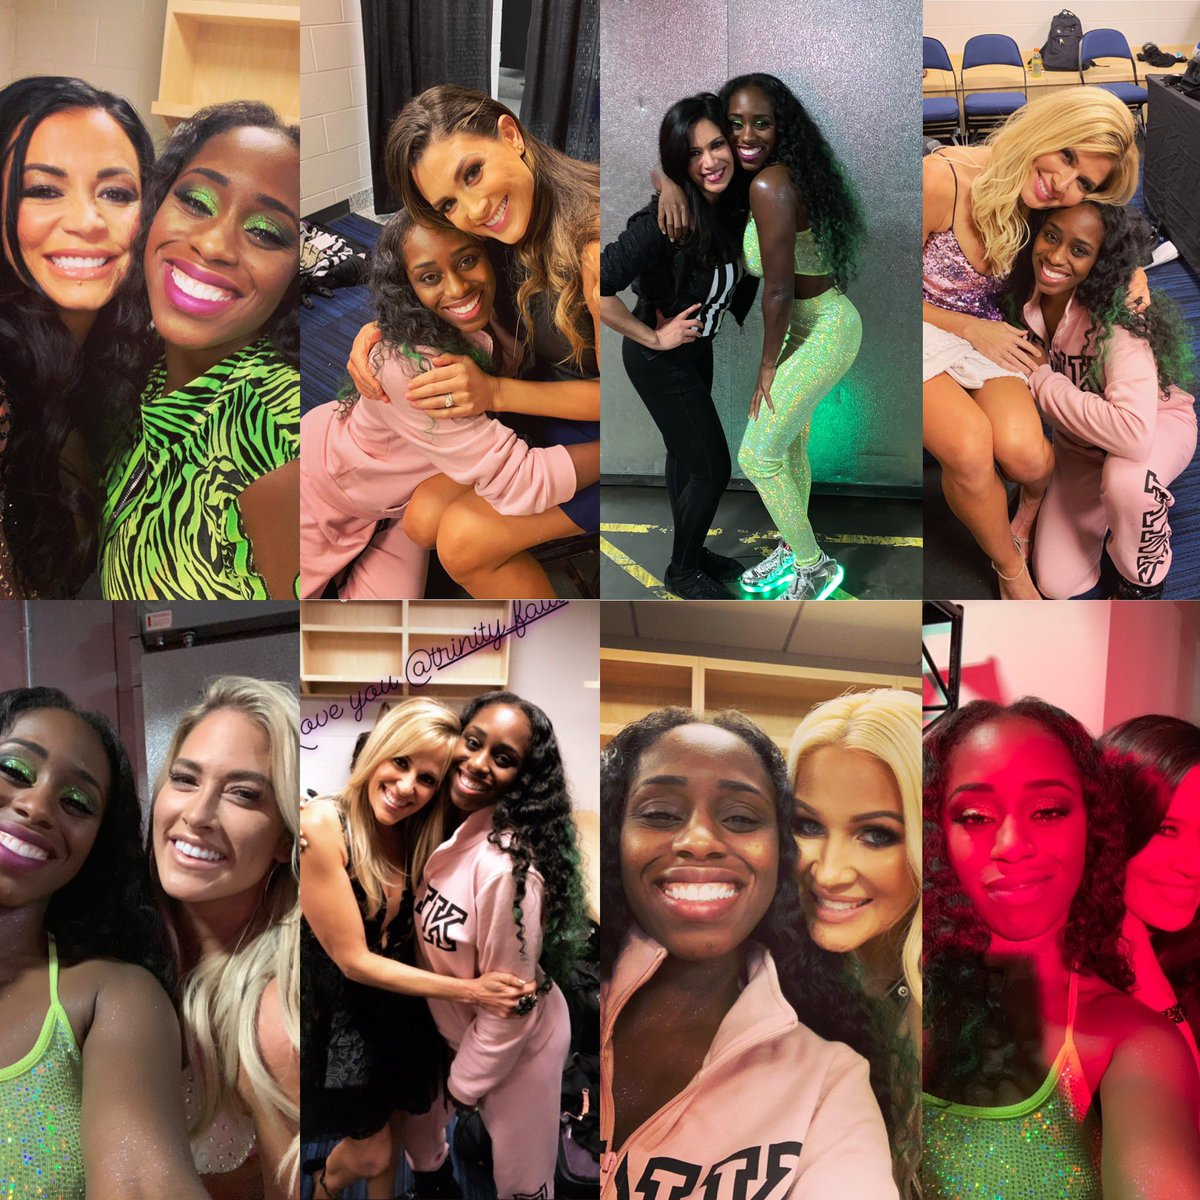 NaomiWWE photo